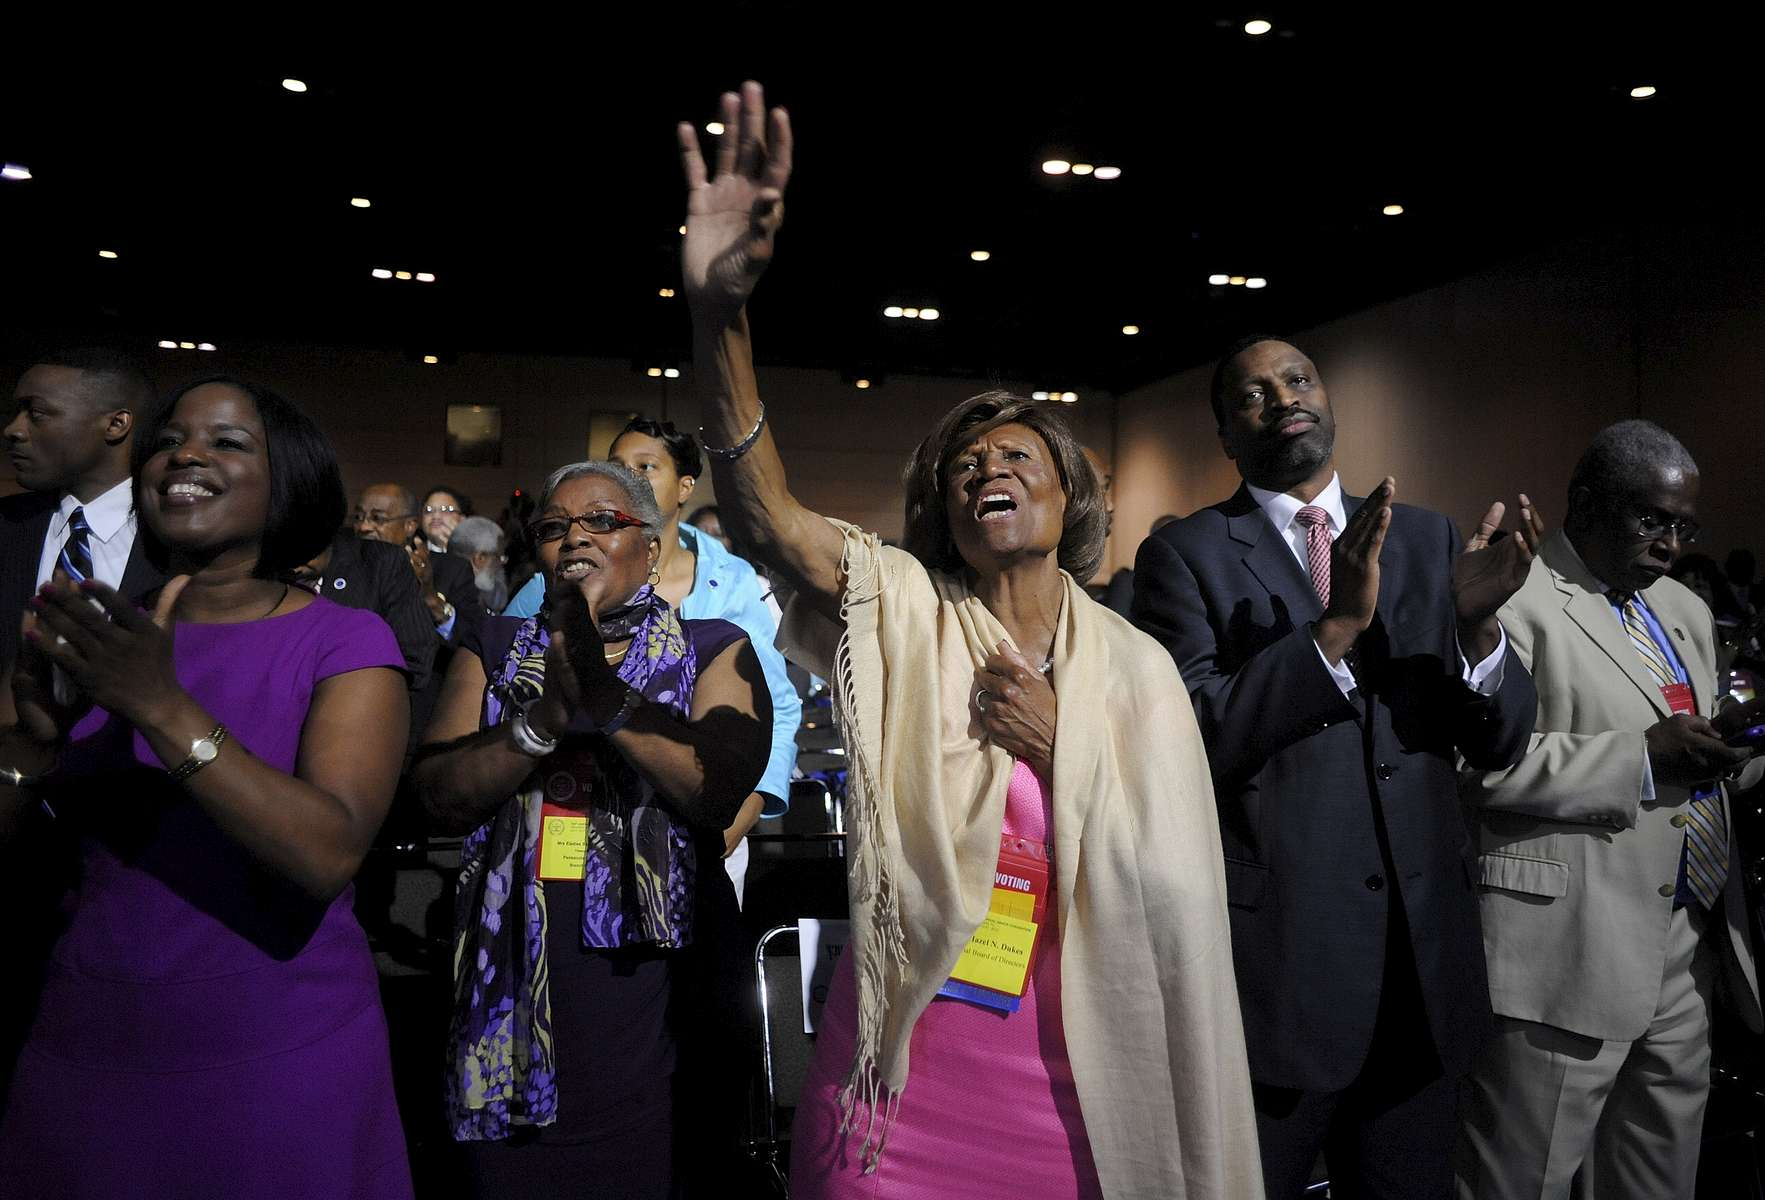 Hazel Dukes, a member of the board of directors of the National Association for the Advancement of Colored People (NAACP), cheers at the end of a speech by NAACP president Benjamin Jealous  to the 2013 NAACP convention in Orlando, Fla., on Monday, July 15, 2013. In the wake of the George Zimmerman murder trial, civil rights leaders, including Jealous, are urging the Justice Department to pursue federal civil rights charges against Zimmerman.